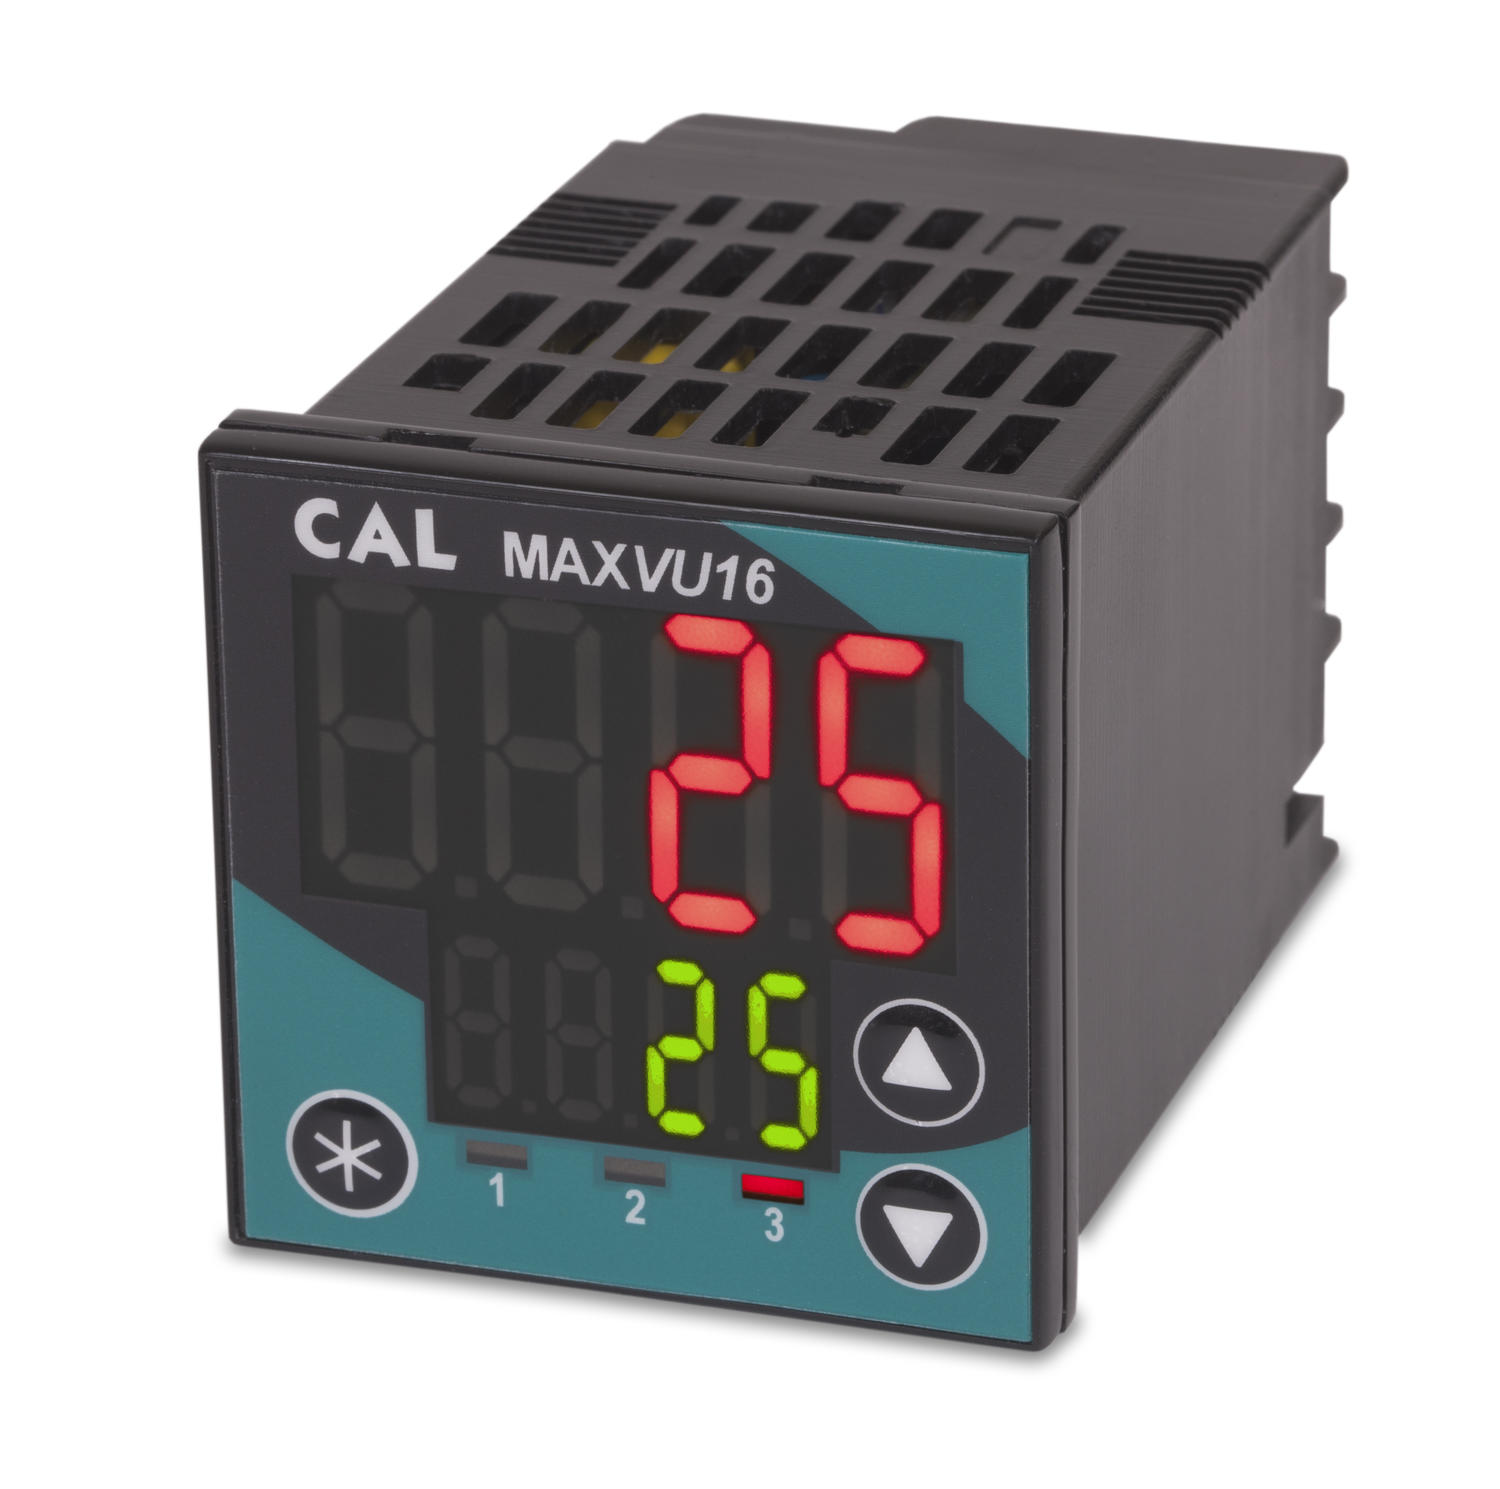 Temperatur- och processregulator, Max Vu